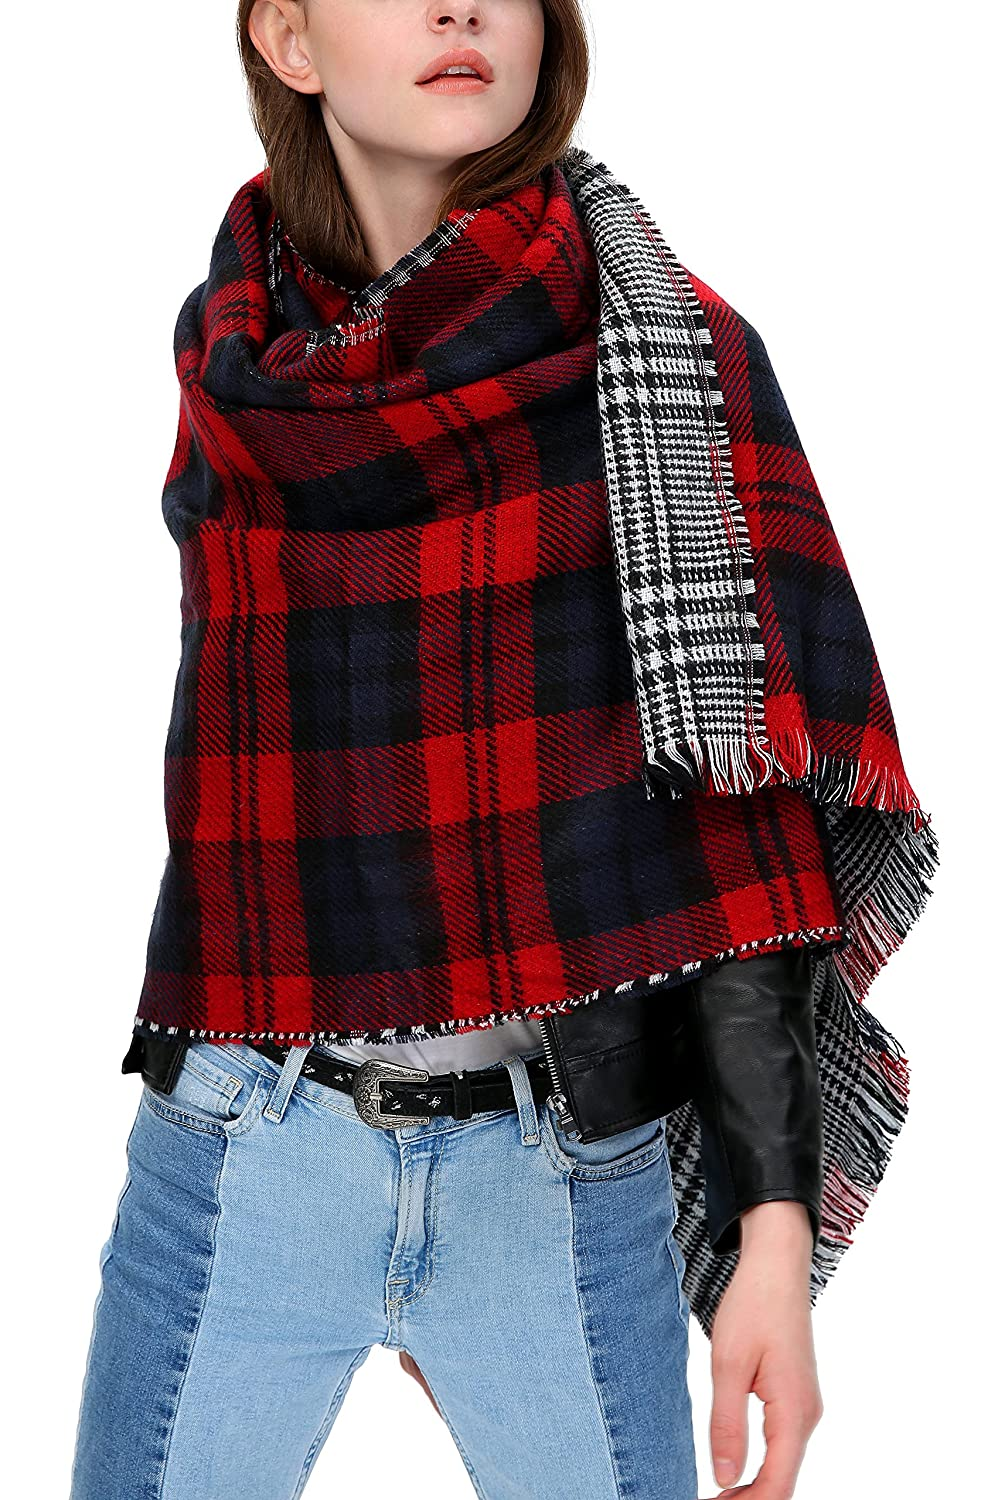 Urban CoCo Women's Tartan Plaid Blanket Scarf Winter Checked Wrap Shawl JX5008G